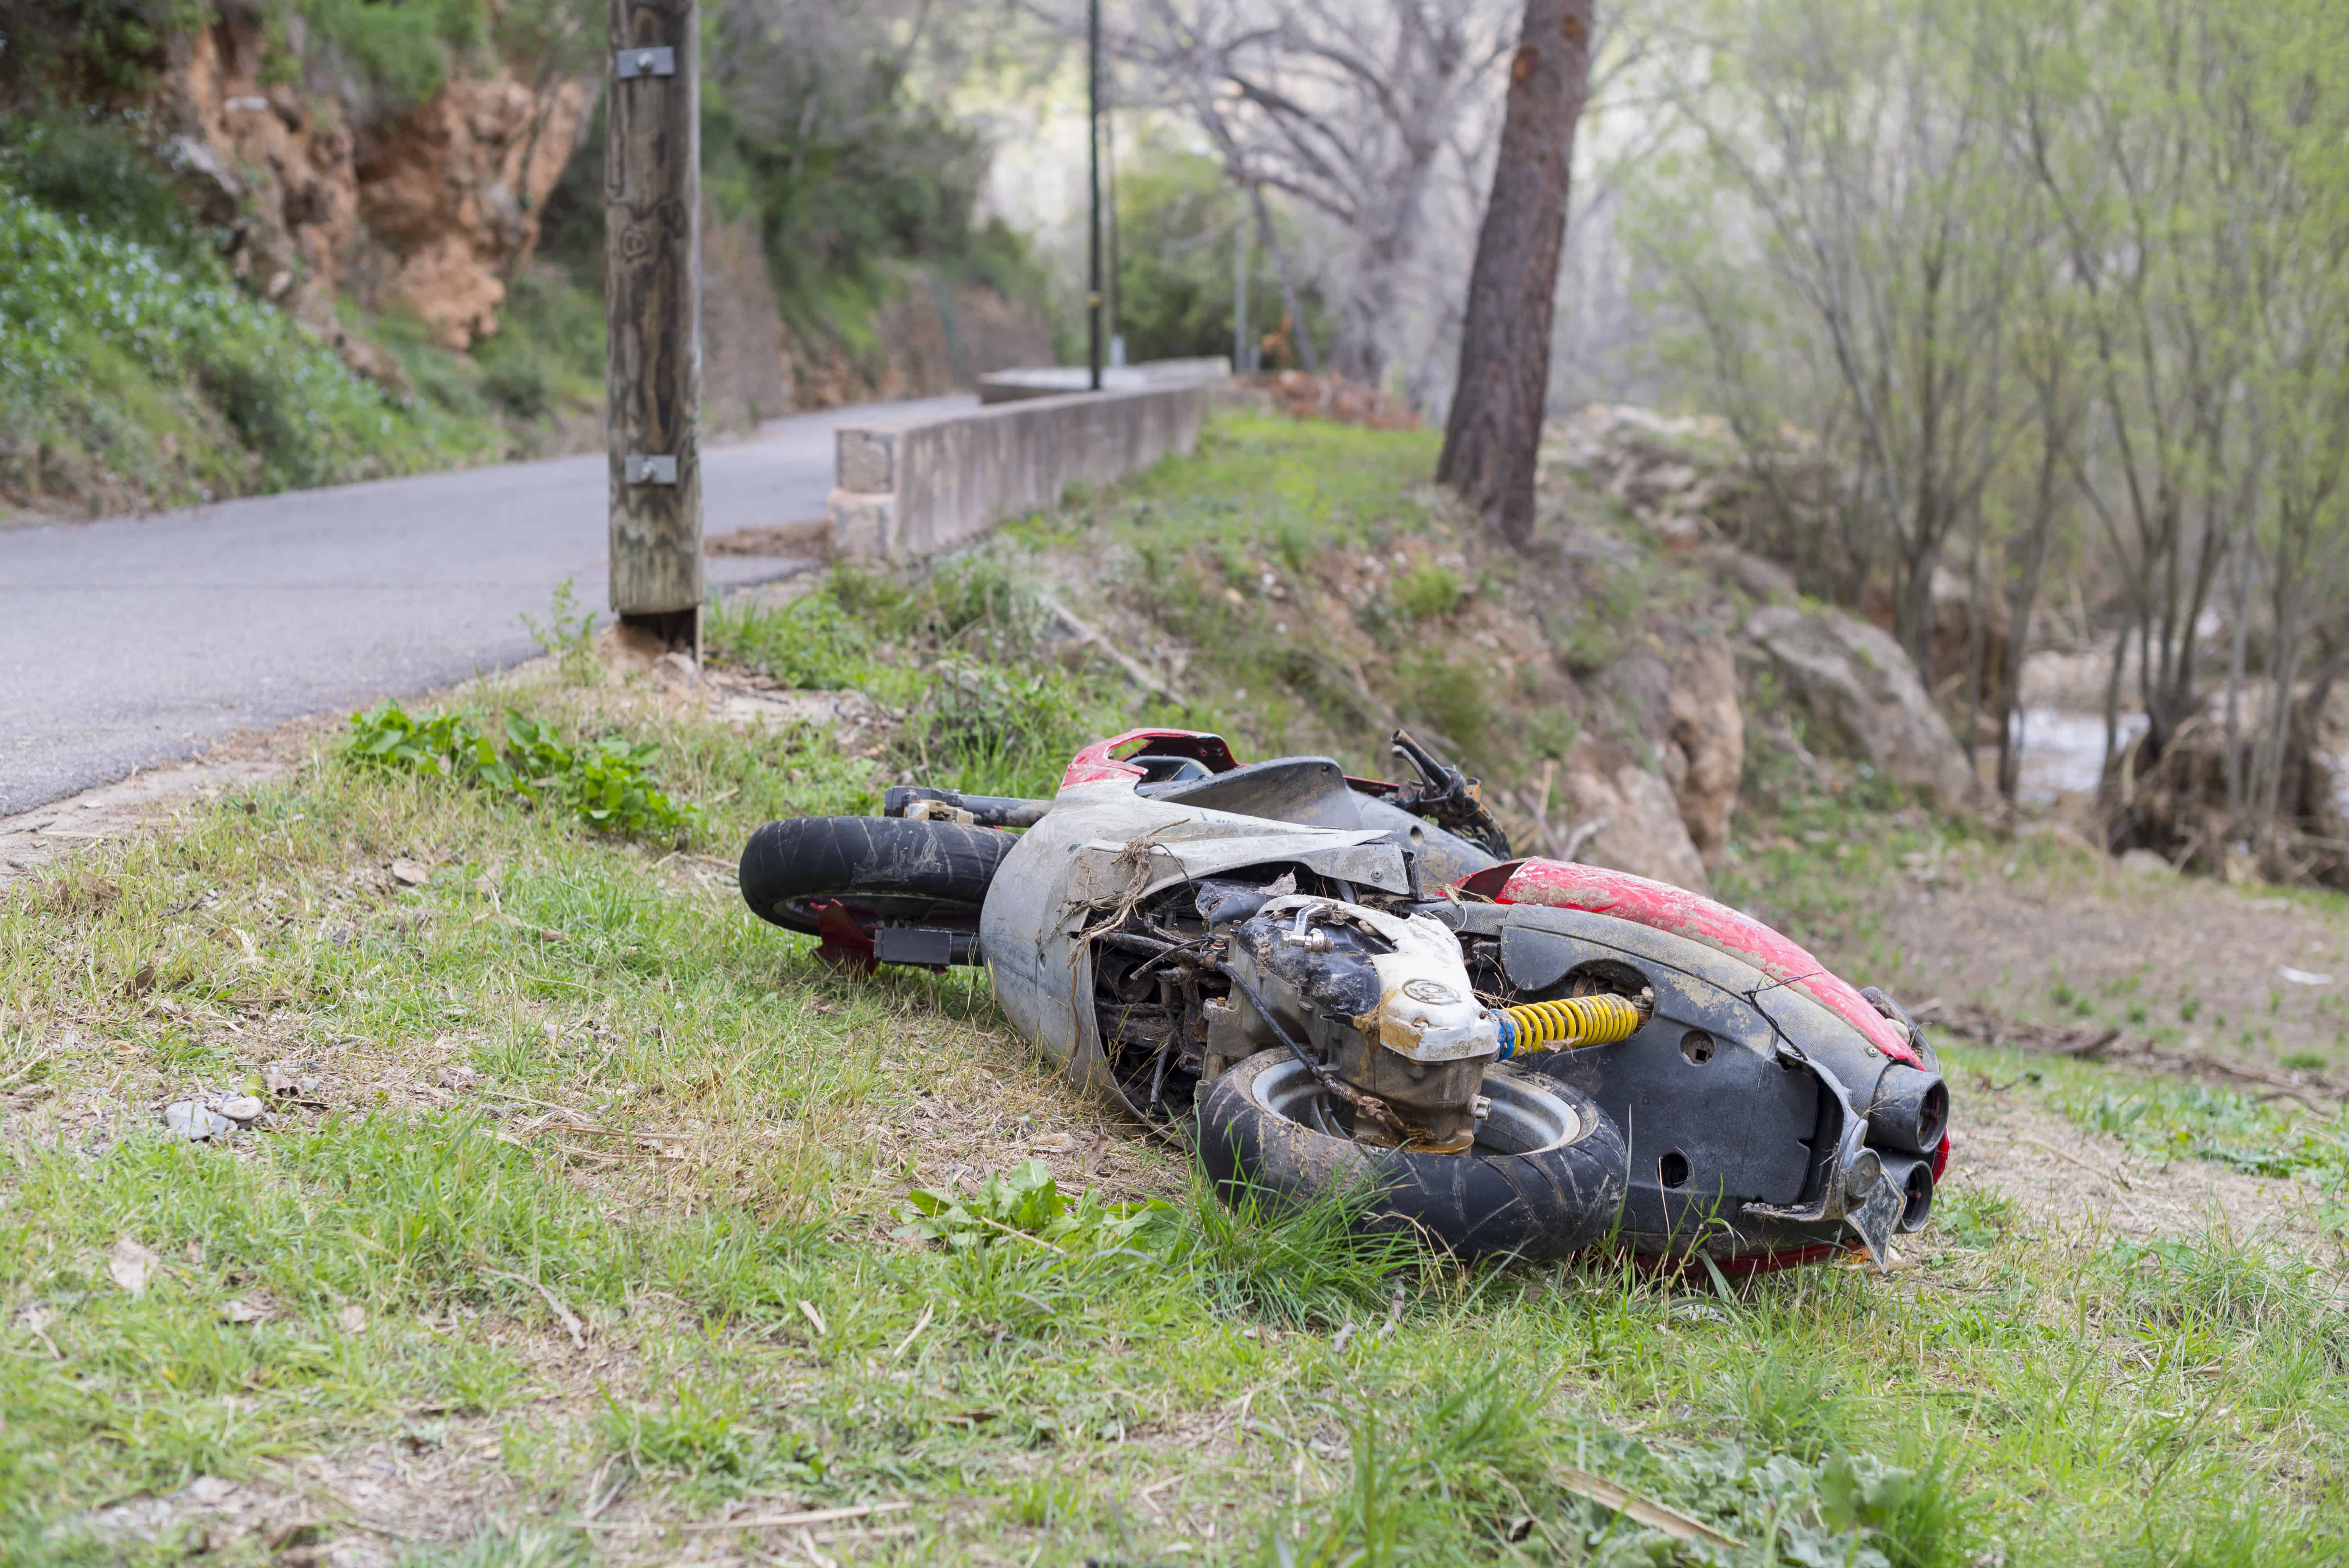 Motorcyclist Injured in Hit-And-Run Crash on State Route 299 [Salyer, CA]